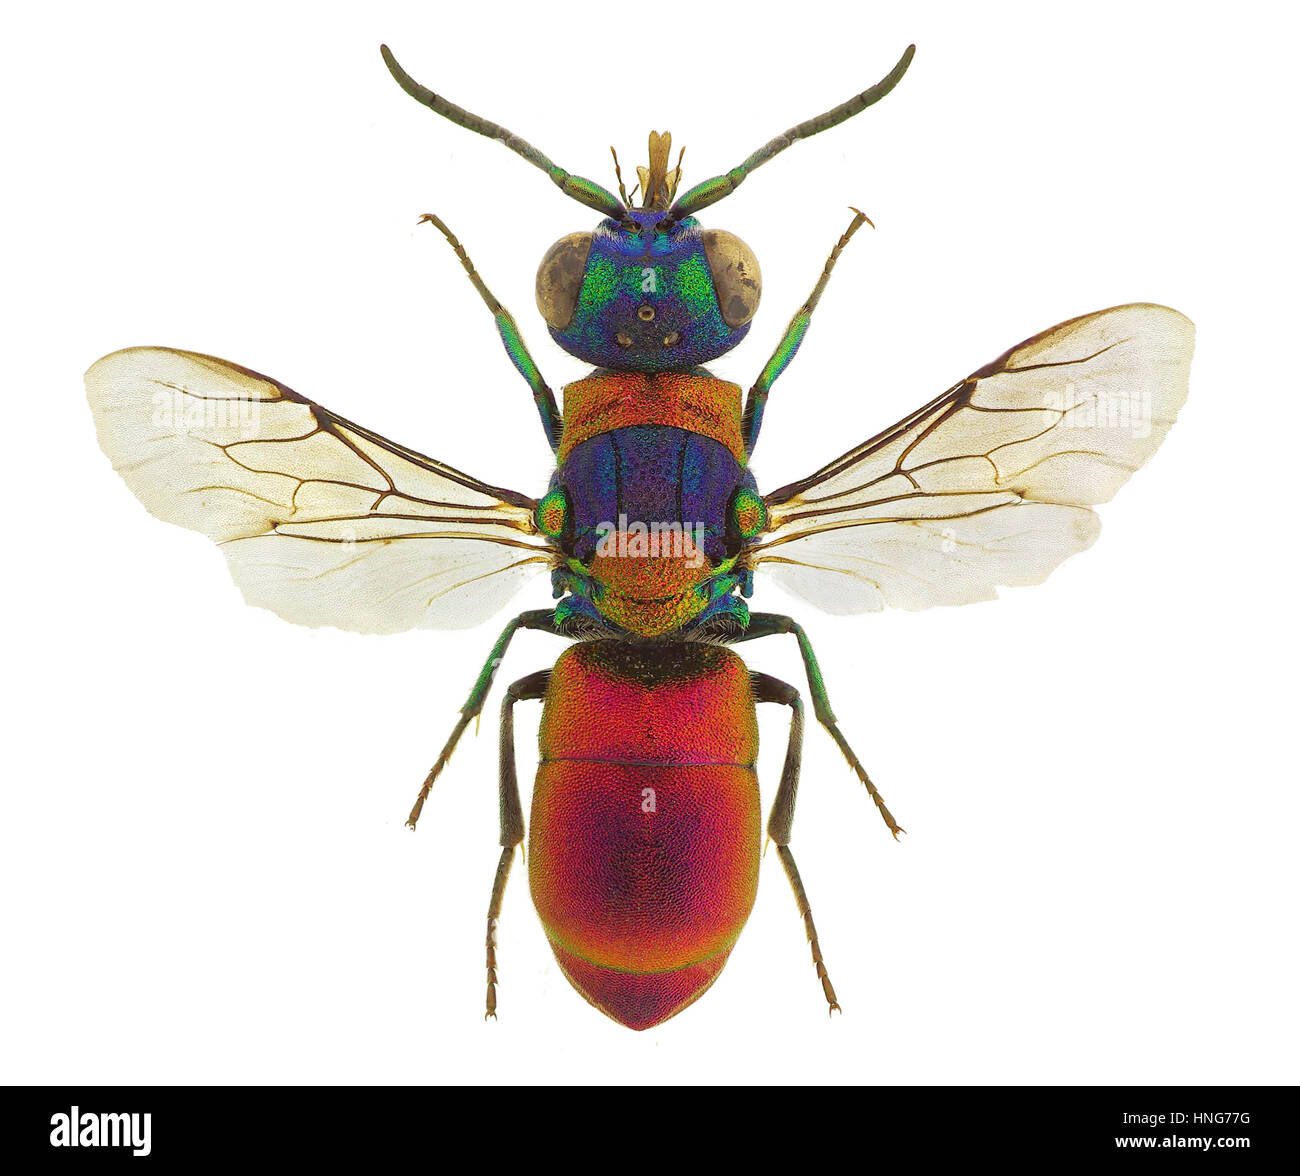 Pseudospinolia uniformis, a stunning cuckoo wasp from Europe - Stock Image